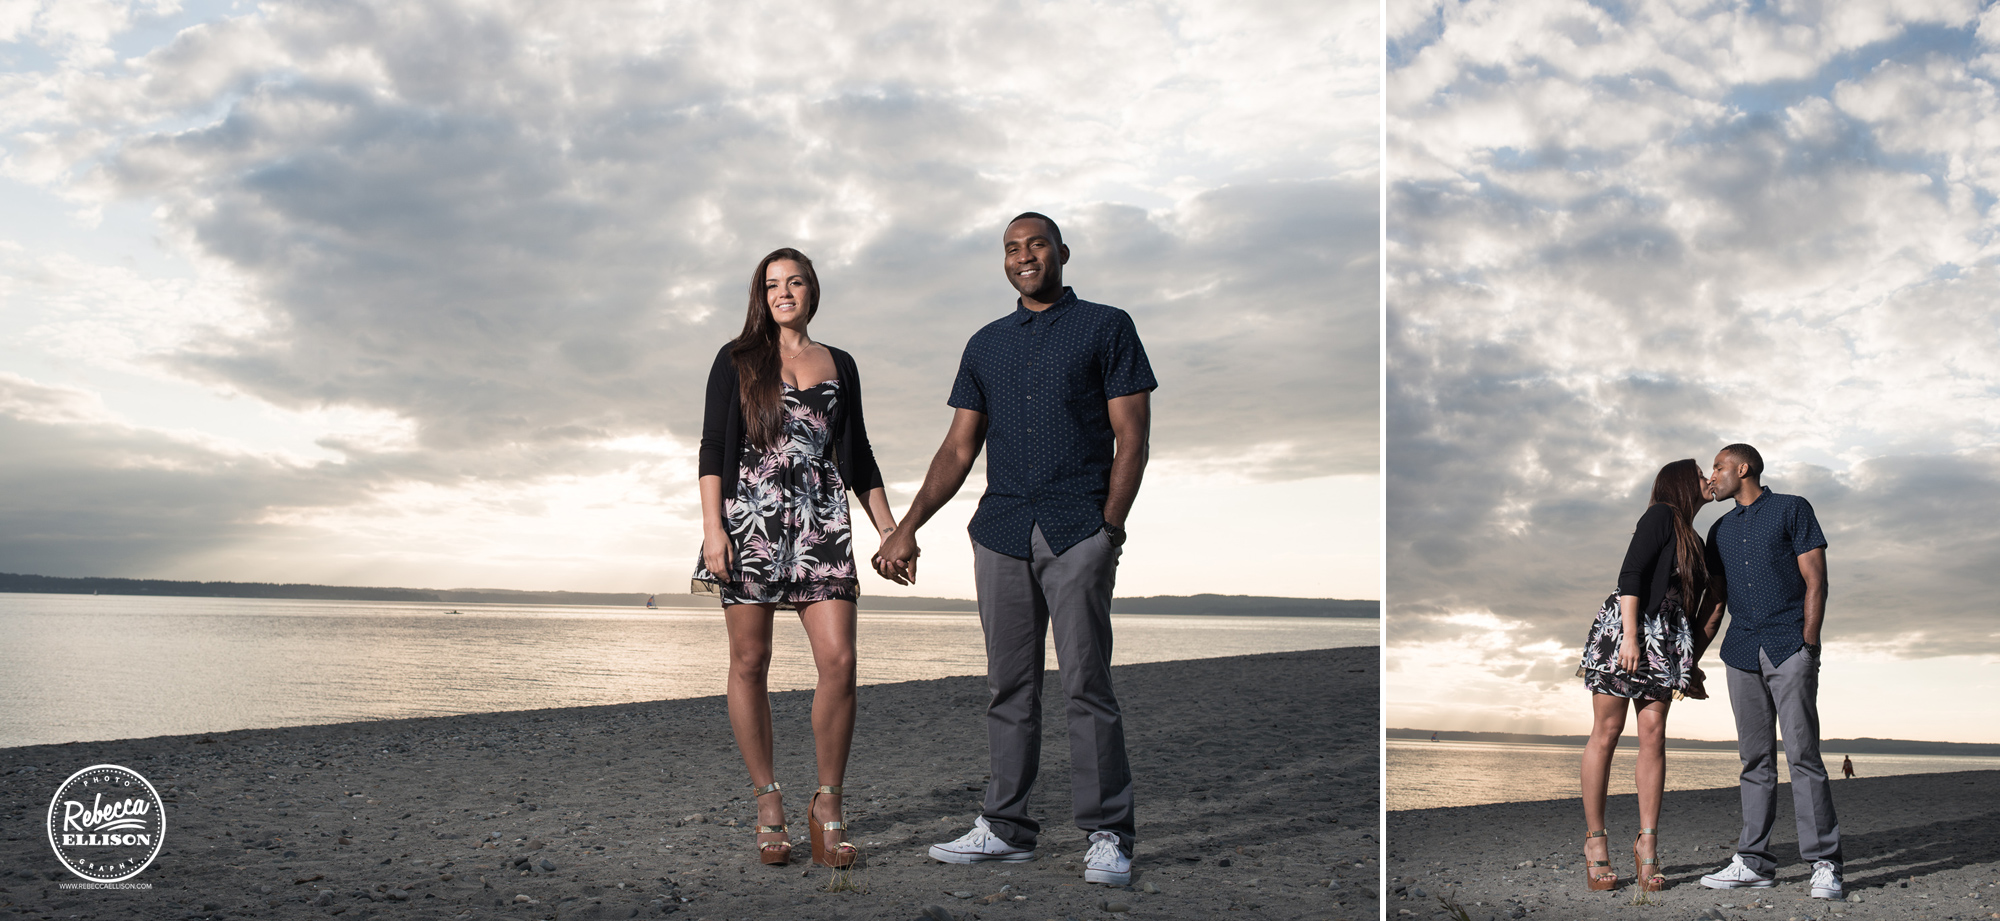 Sunset Beach Engagement photographed by Seattle wedding photographer Rebecca Ellison